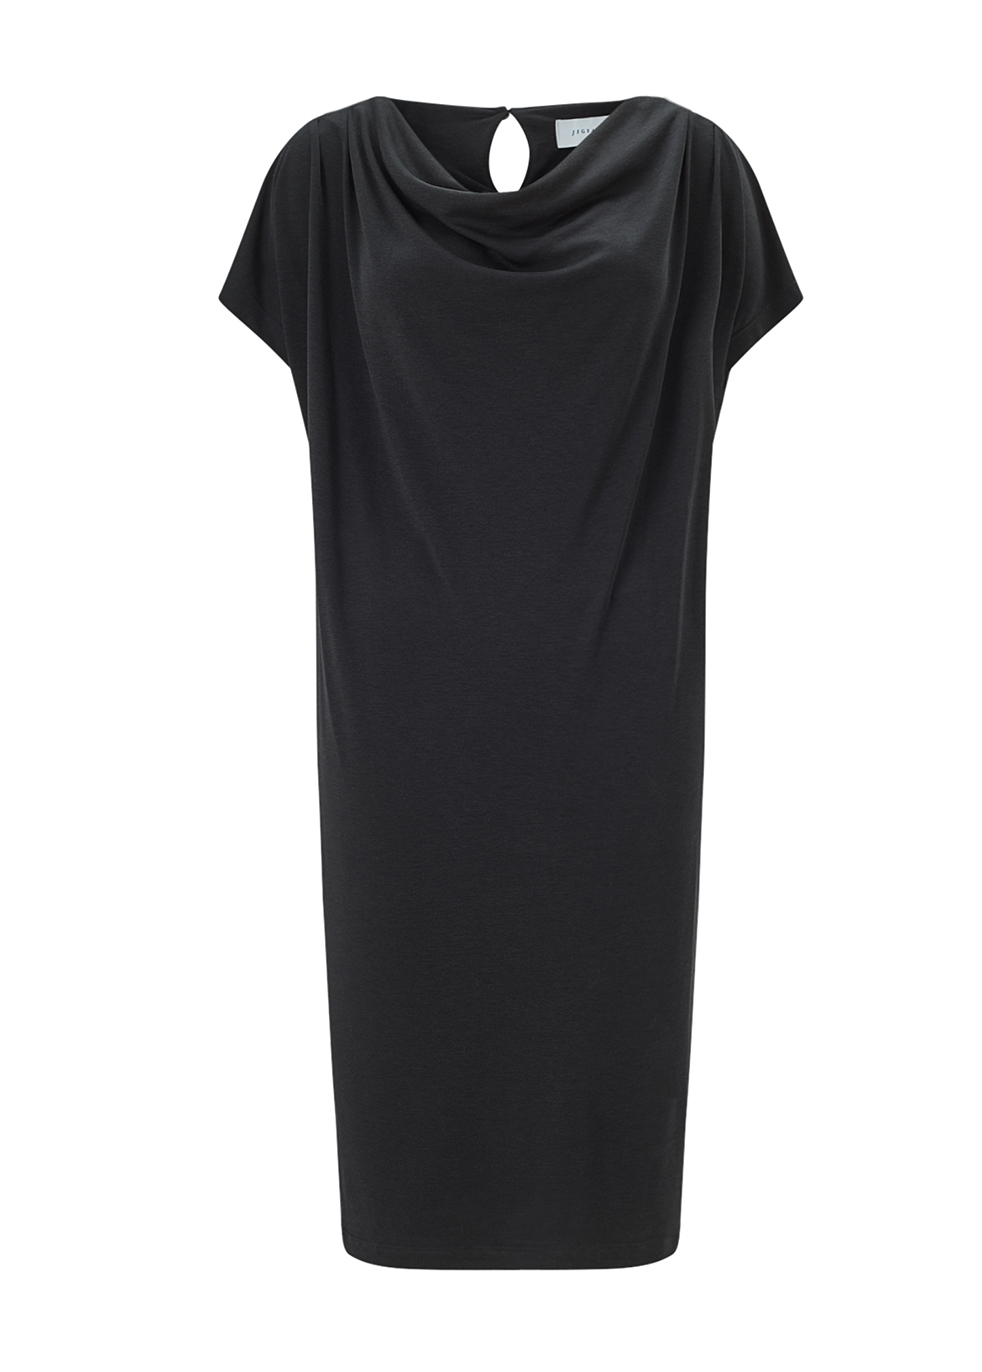 MODERN COWL NECK DRESS